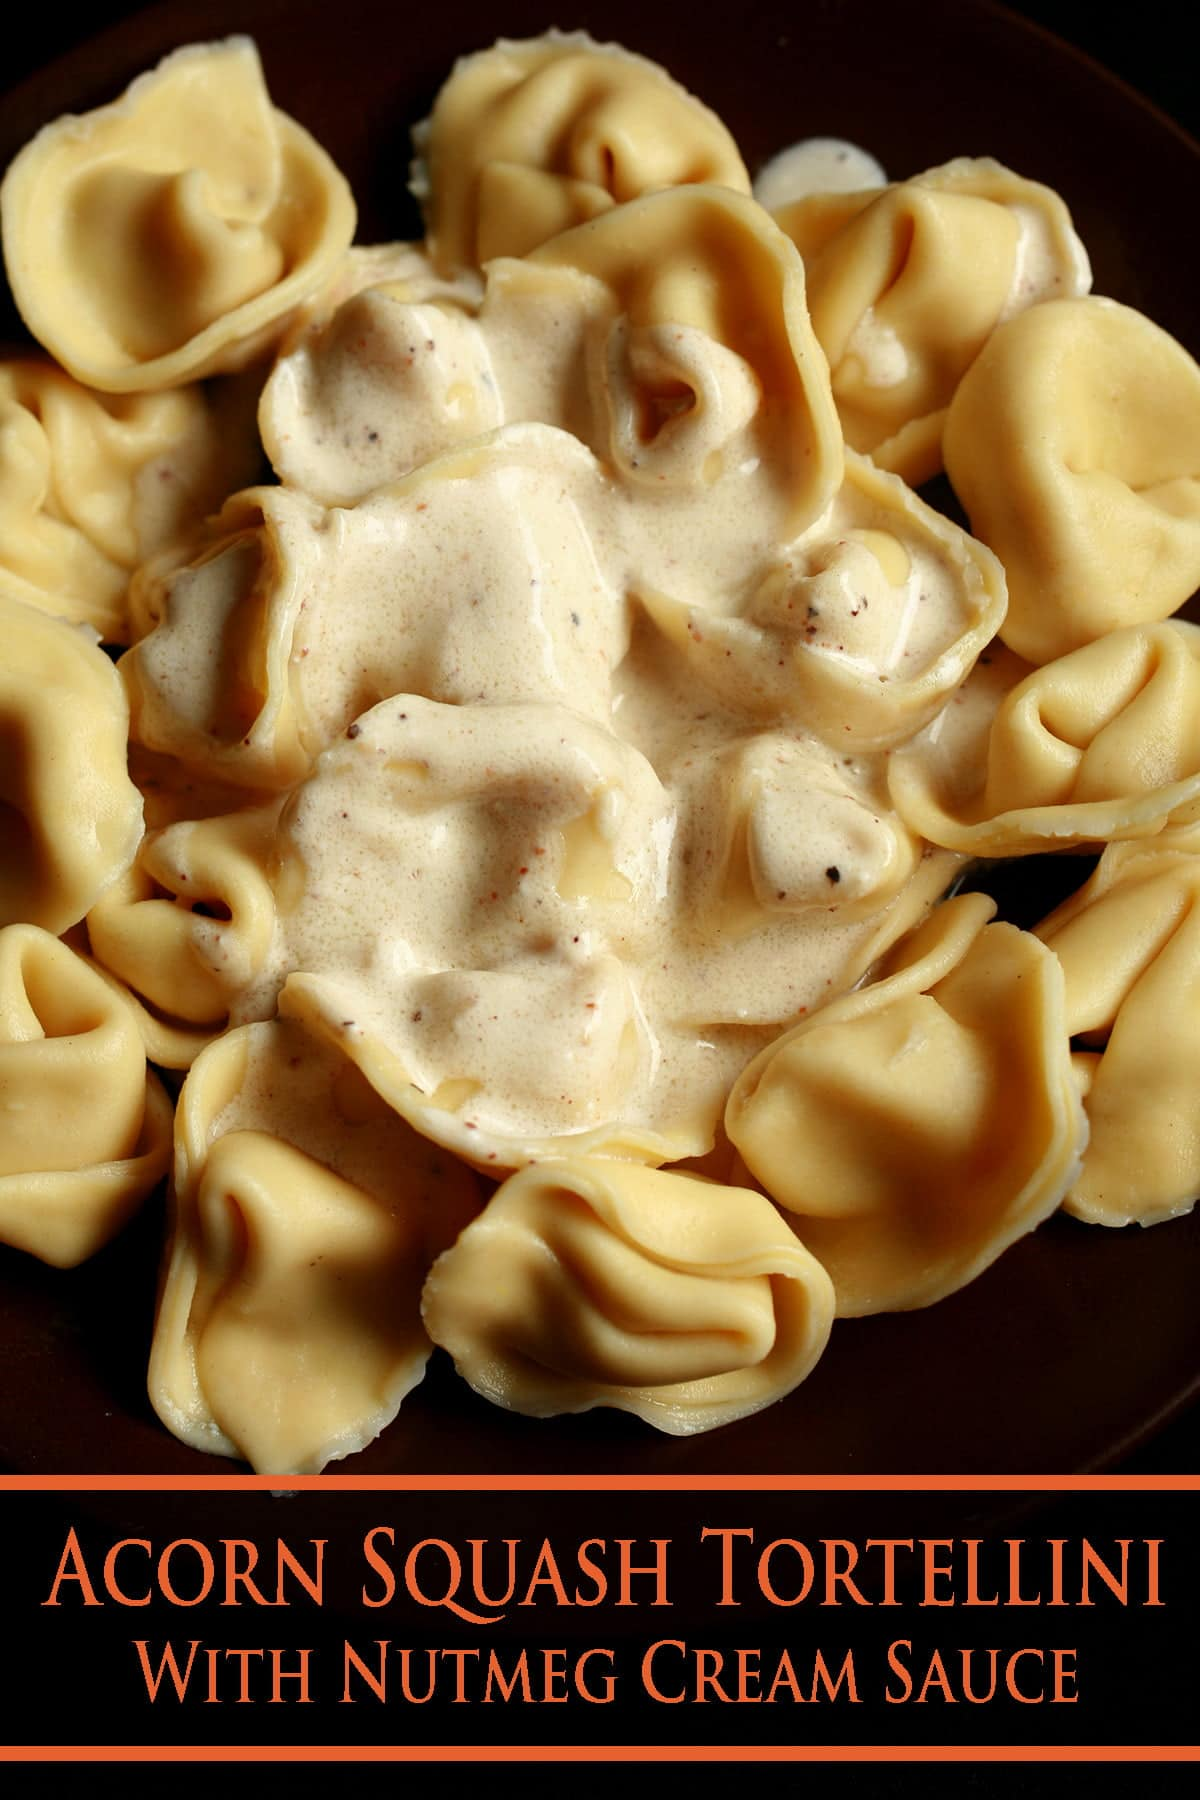 A plate of Acorn Squash Tortellini, topped with nutmeg cream sauce.